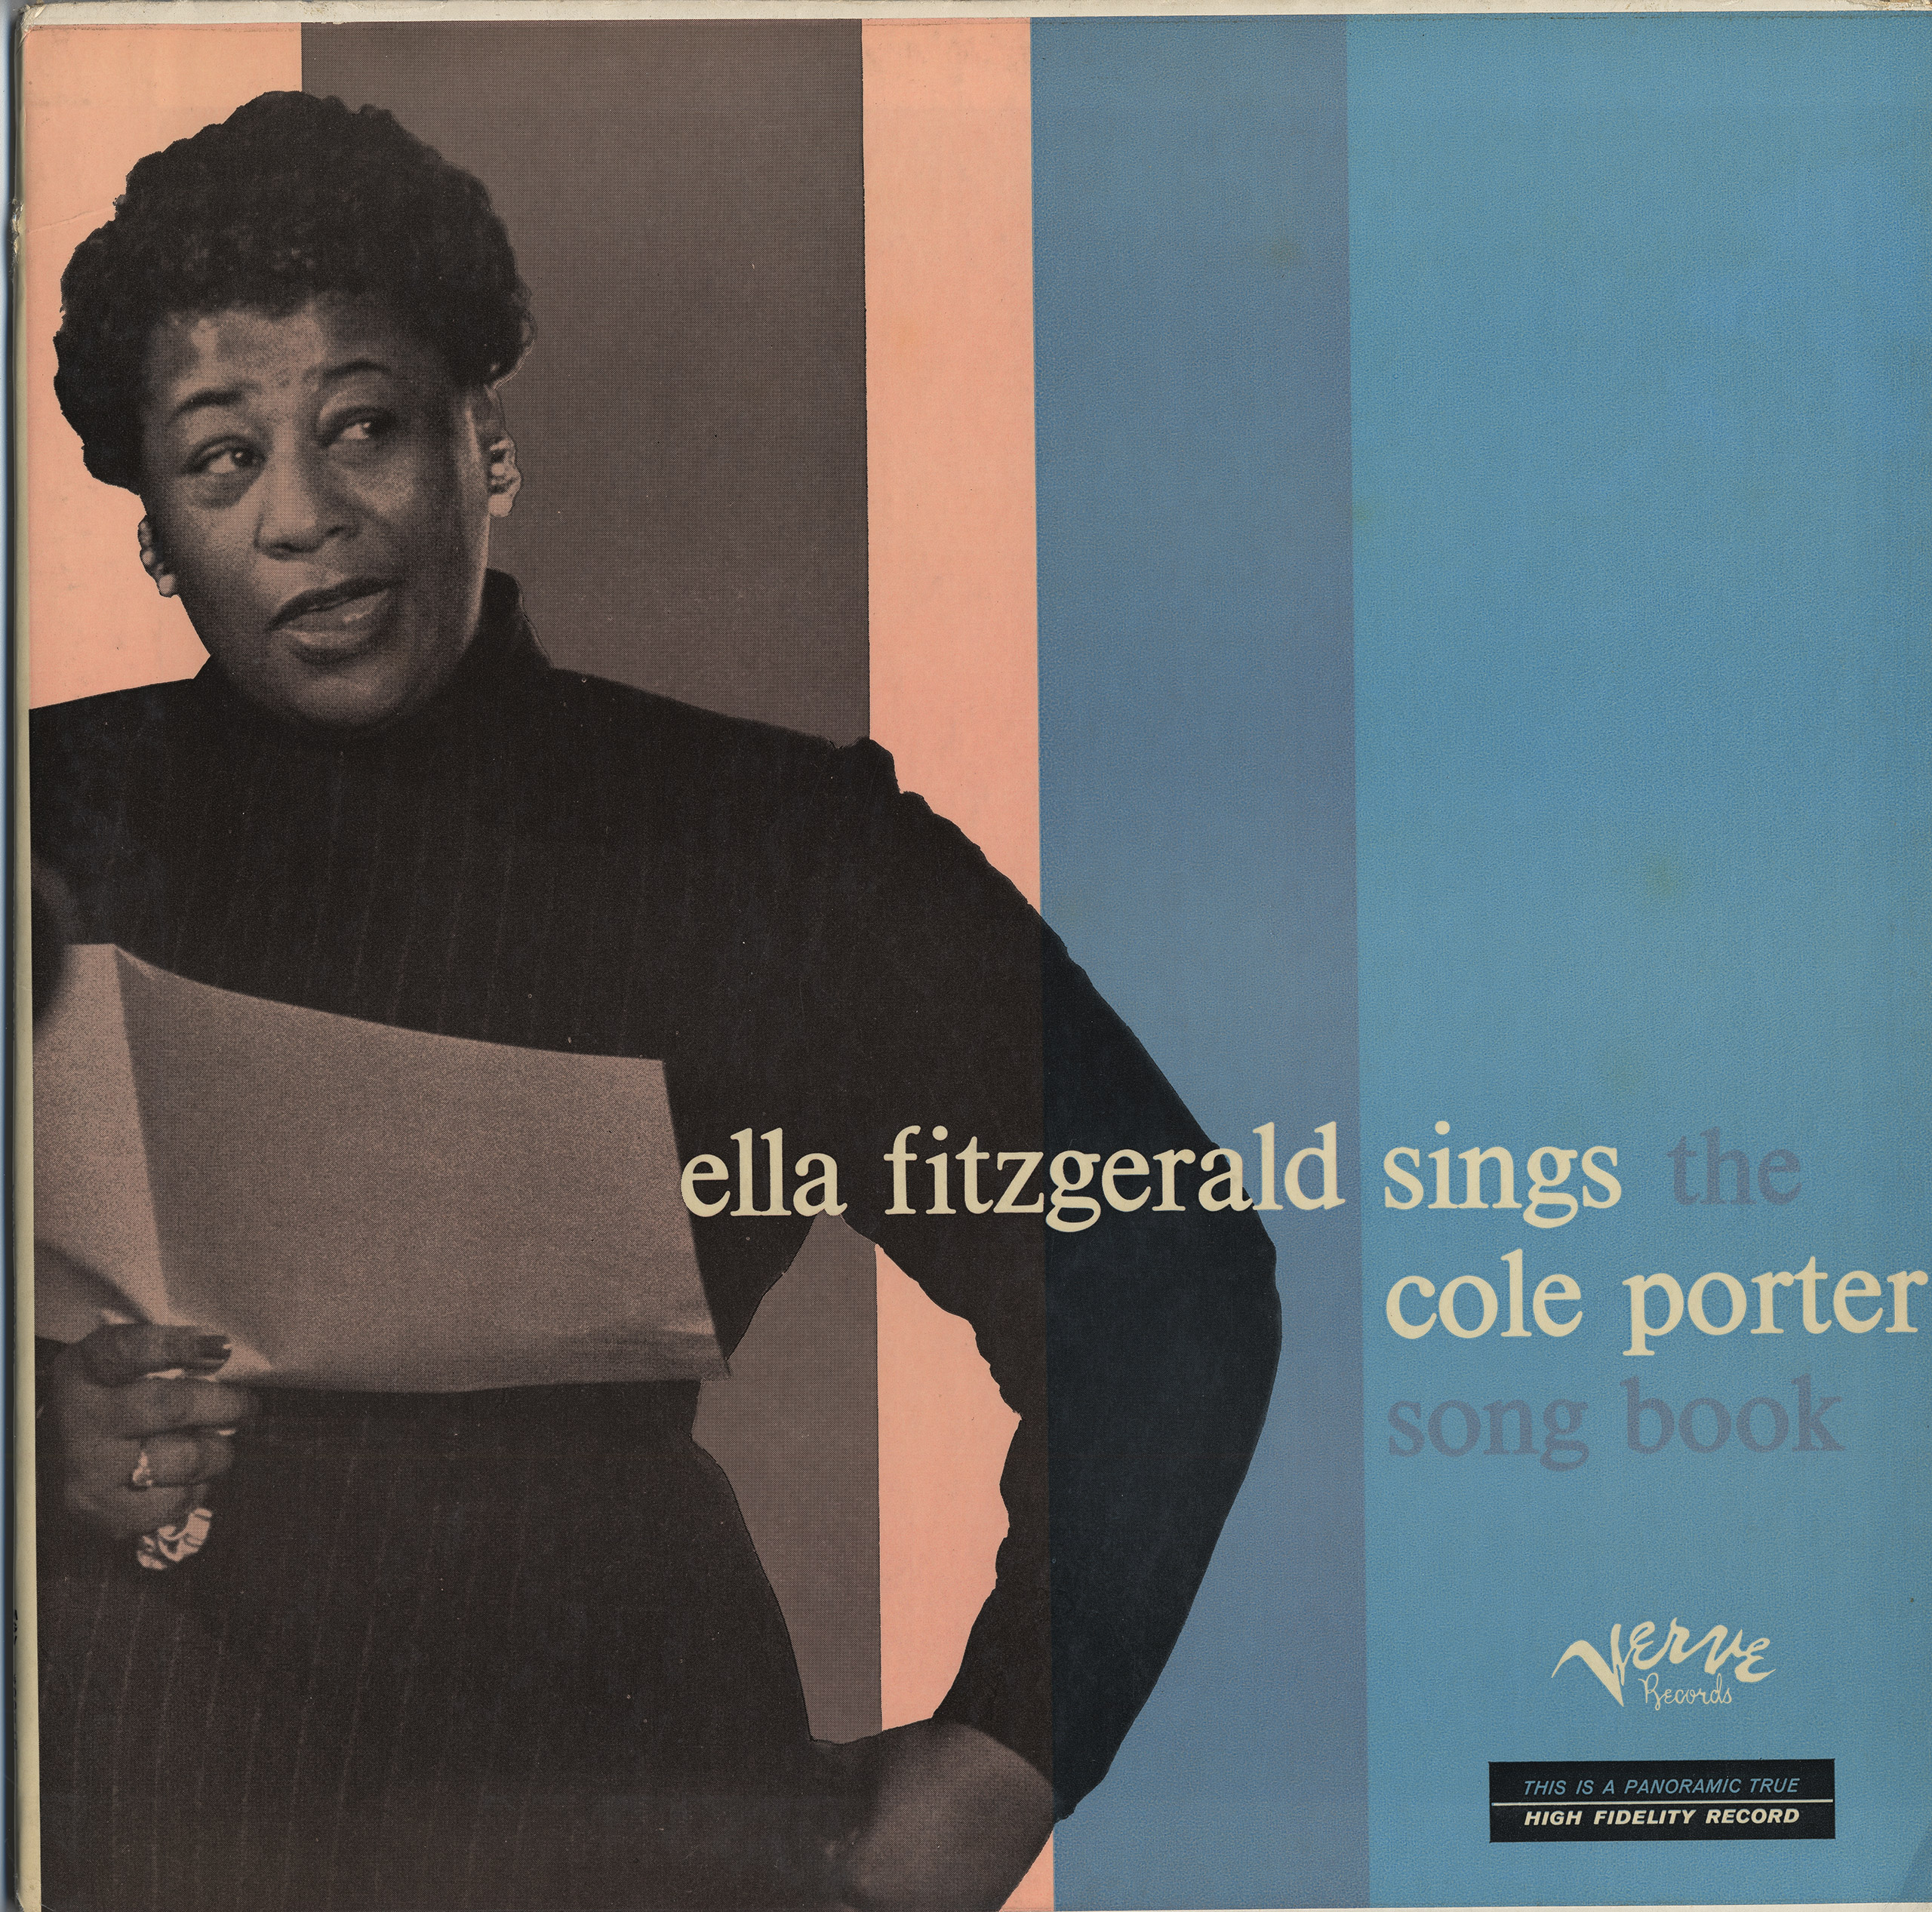 LP Cover Ella Fitzgerald Sings the Cole Porter Songbook, c. 1956: This became the first in Fitzgerald's series of nine Songbook recordings.